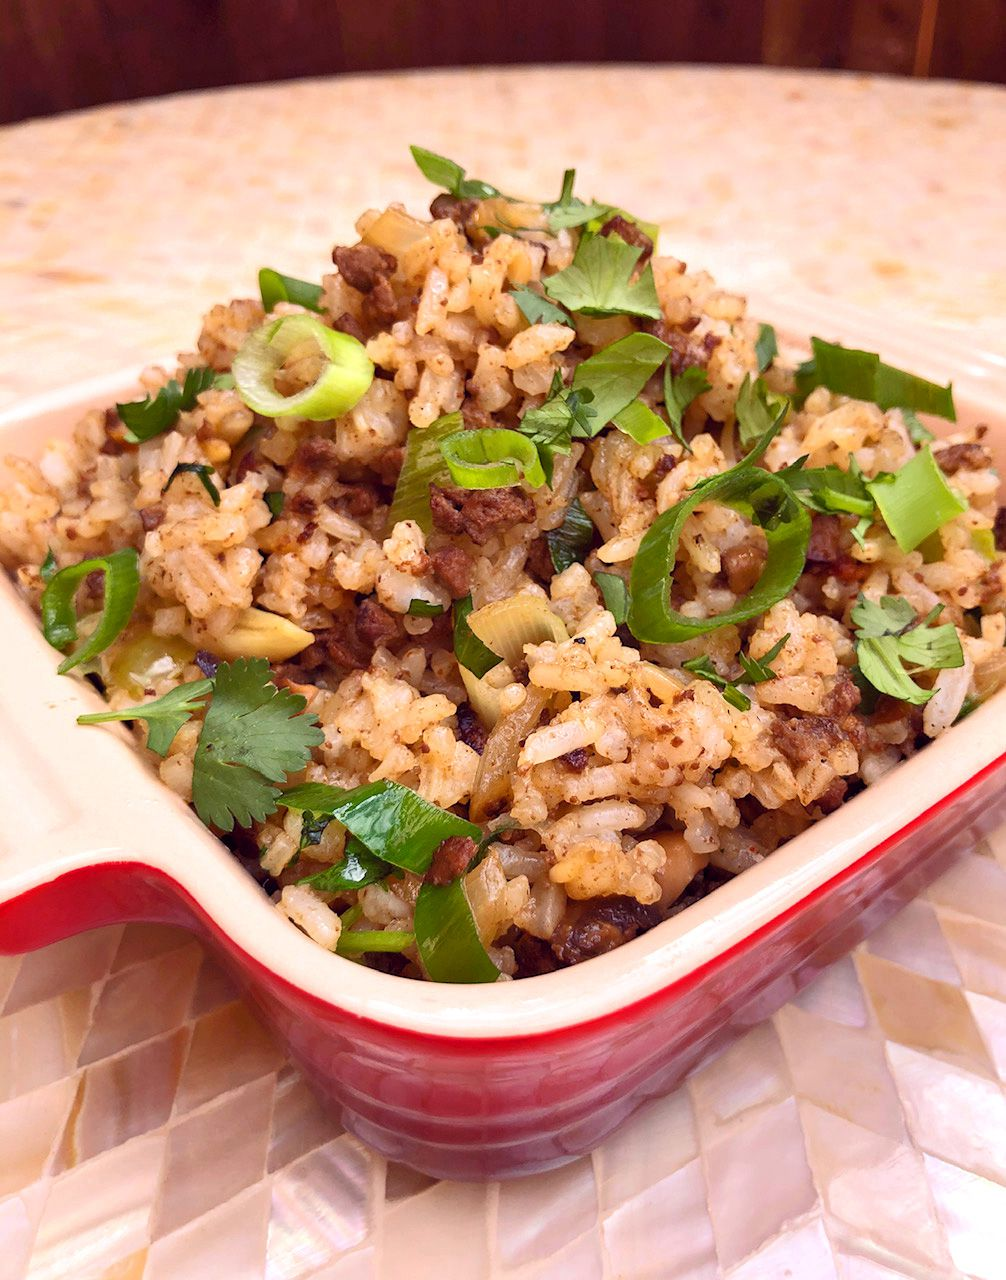 Chicken livers and gizzards make Dirty Rice so good, says Tiffany Derry, chef and owner of Roots Chicken Shak in Plano